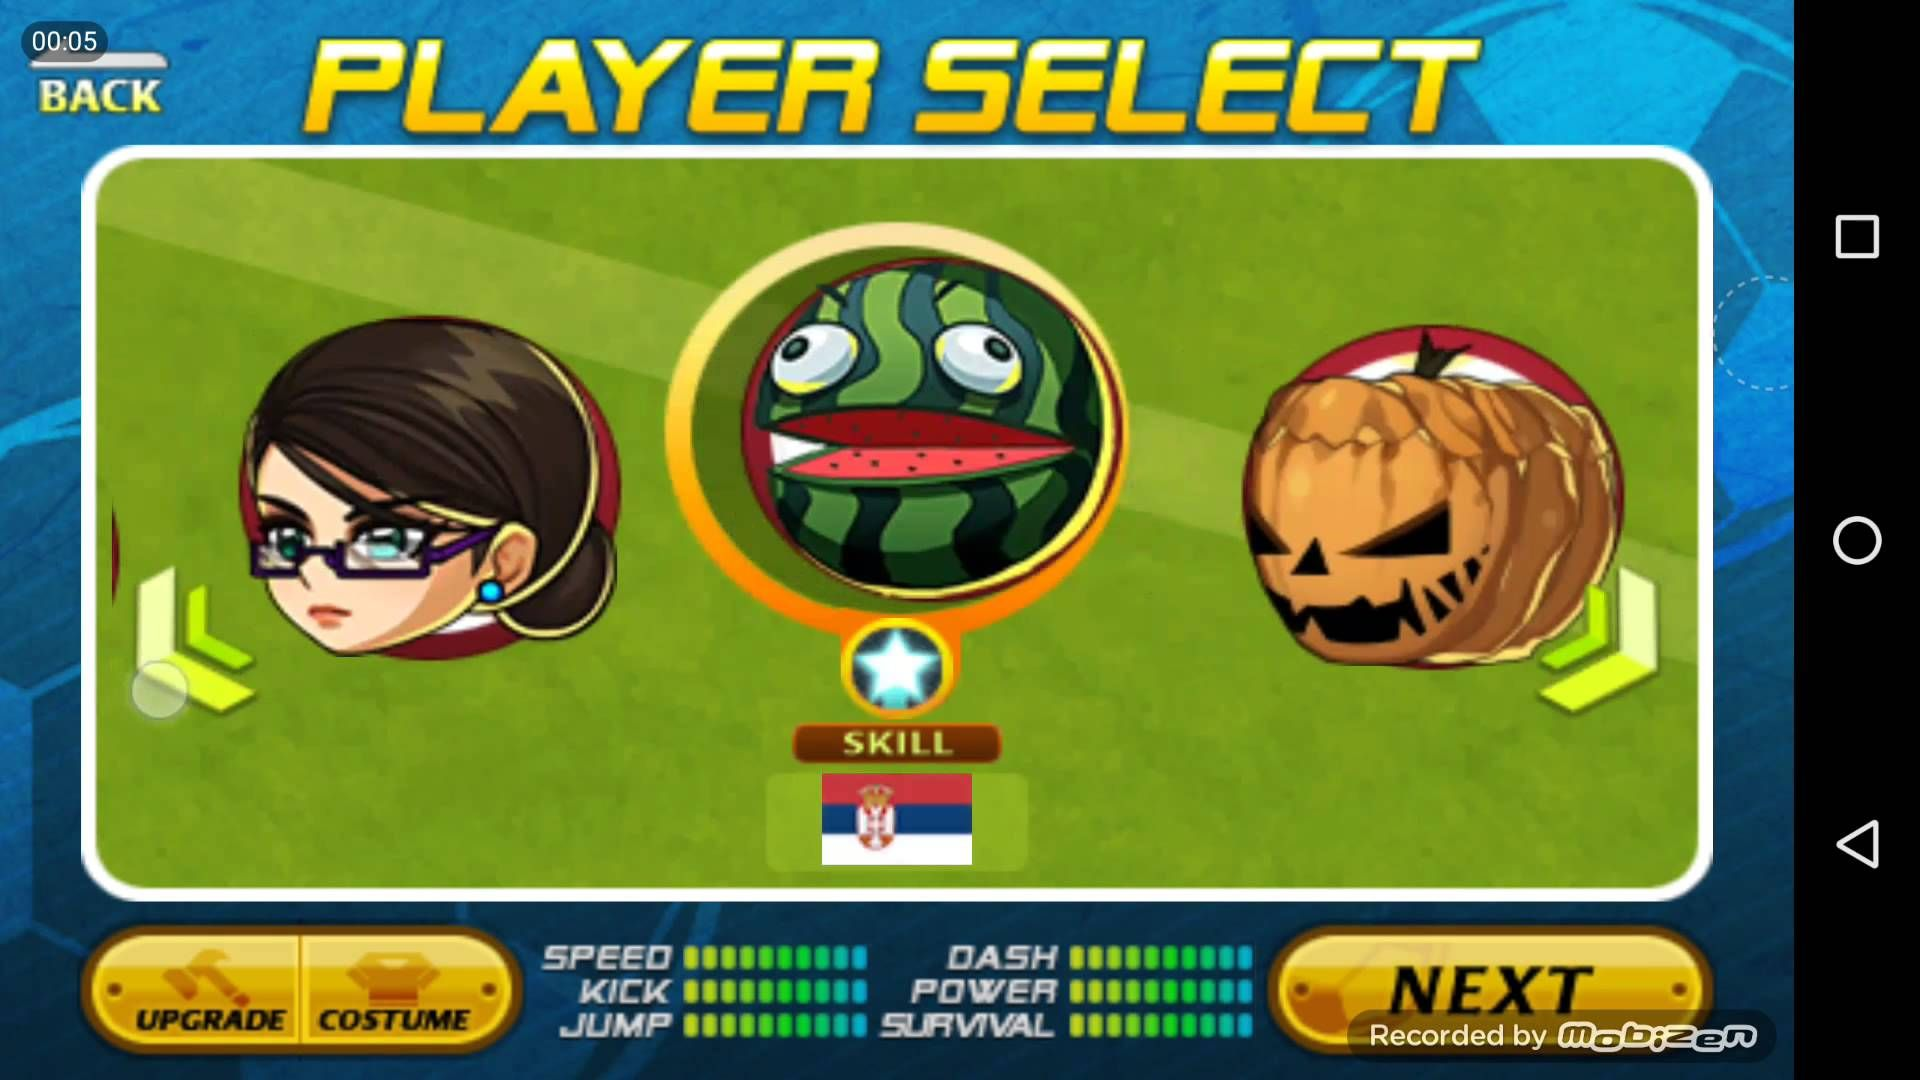 Tips Head Soccer Hack Free Points Free Points Head Soccer Hack Head Soccer Hack And Cheats Head Soccer Hack 2020 Upda In 2020 Head Soccer Head Soccer Game Soccer